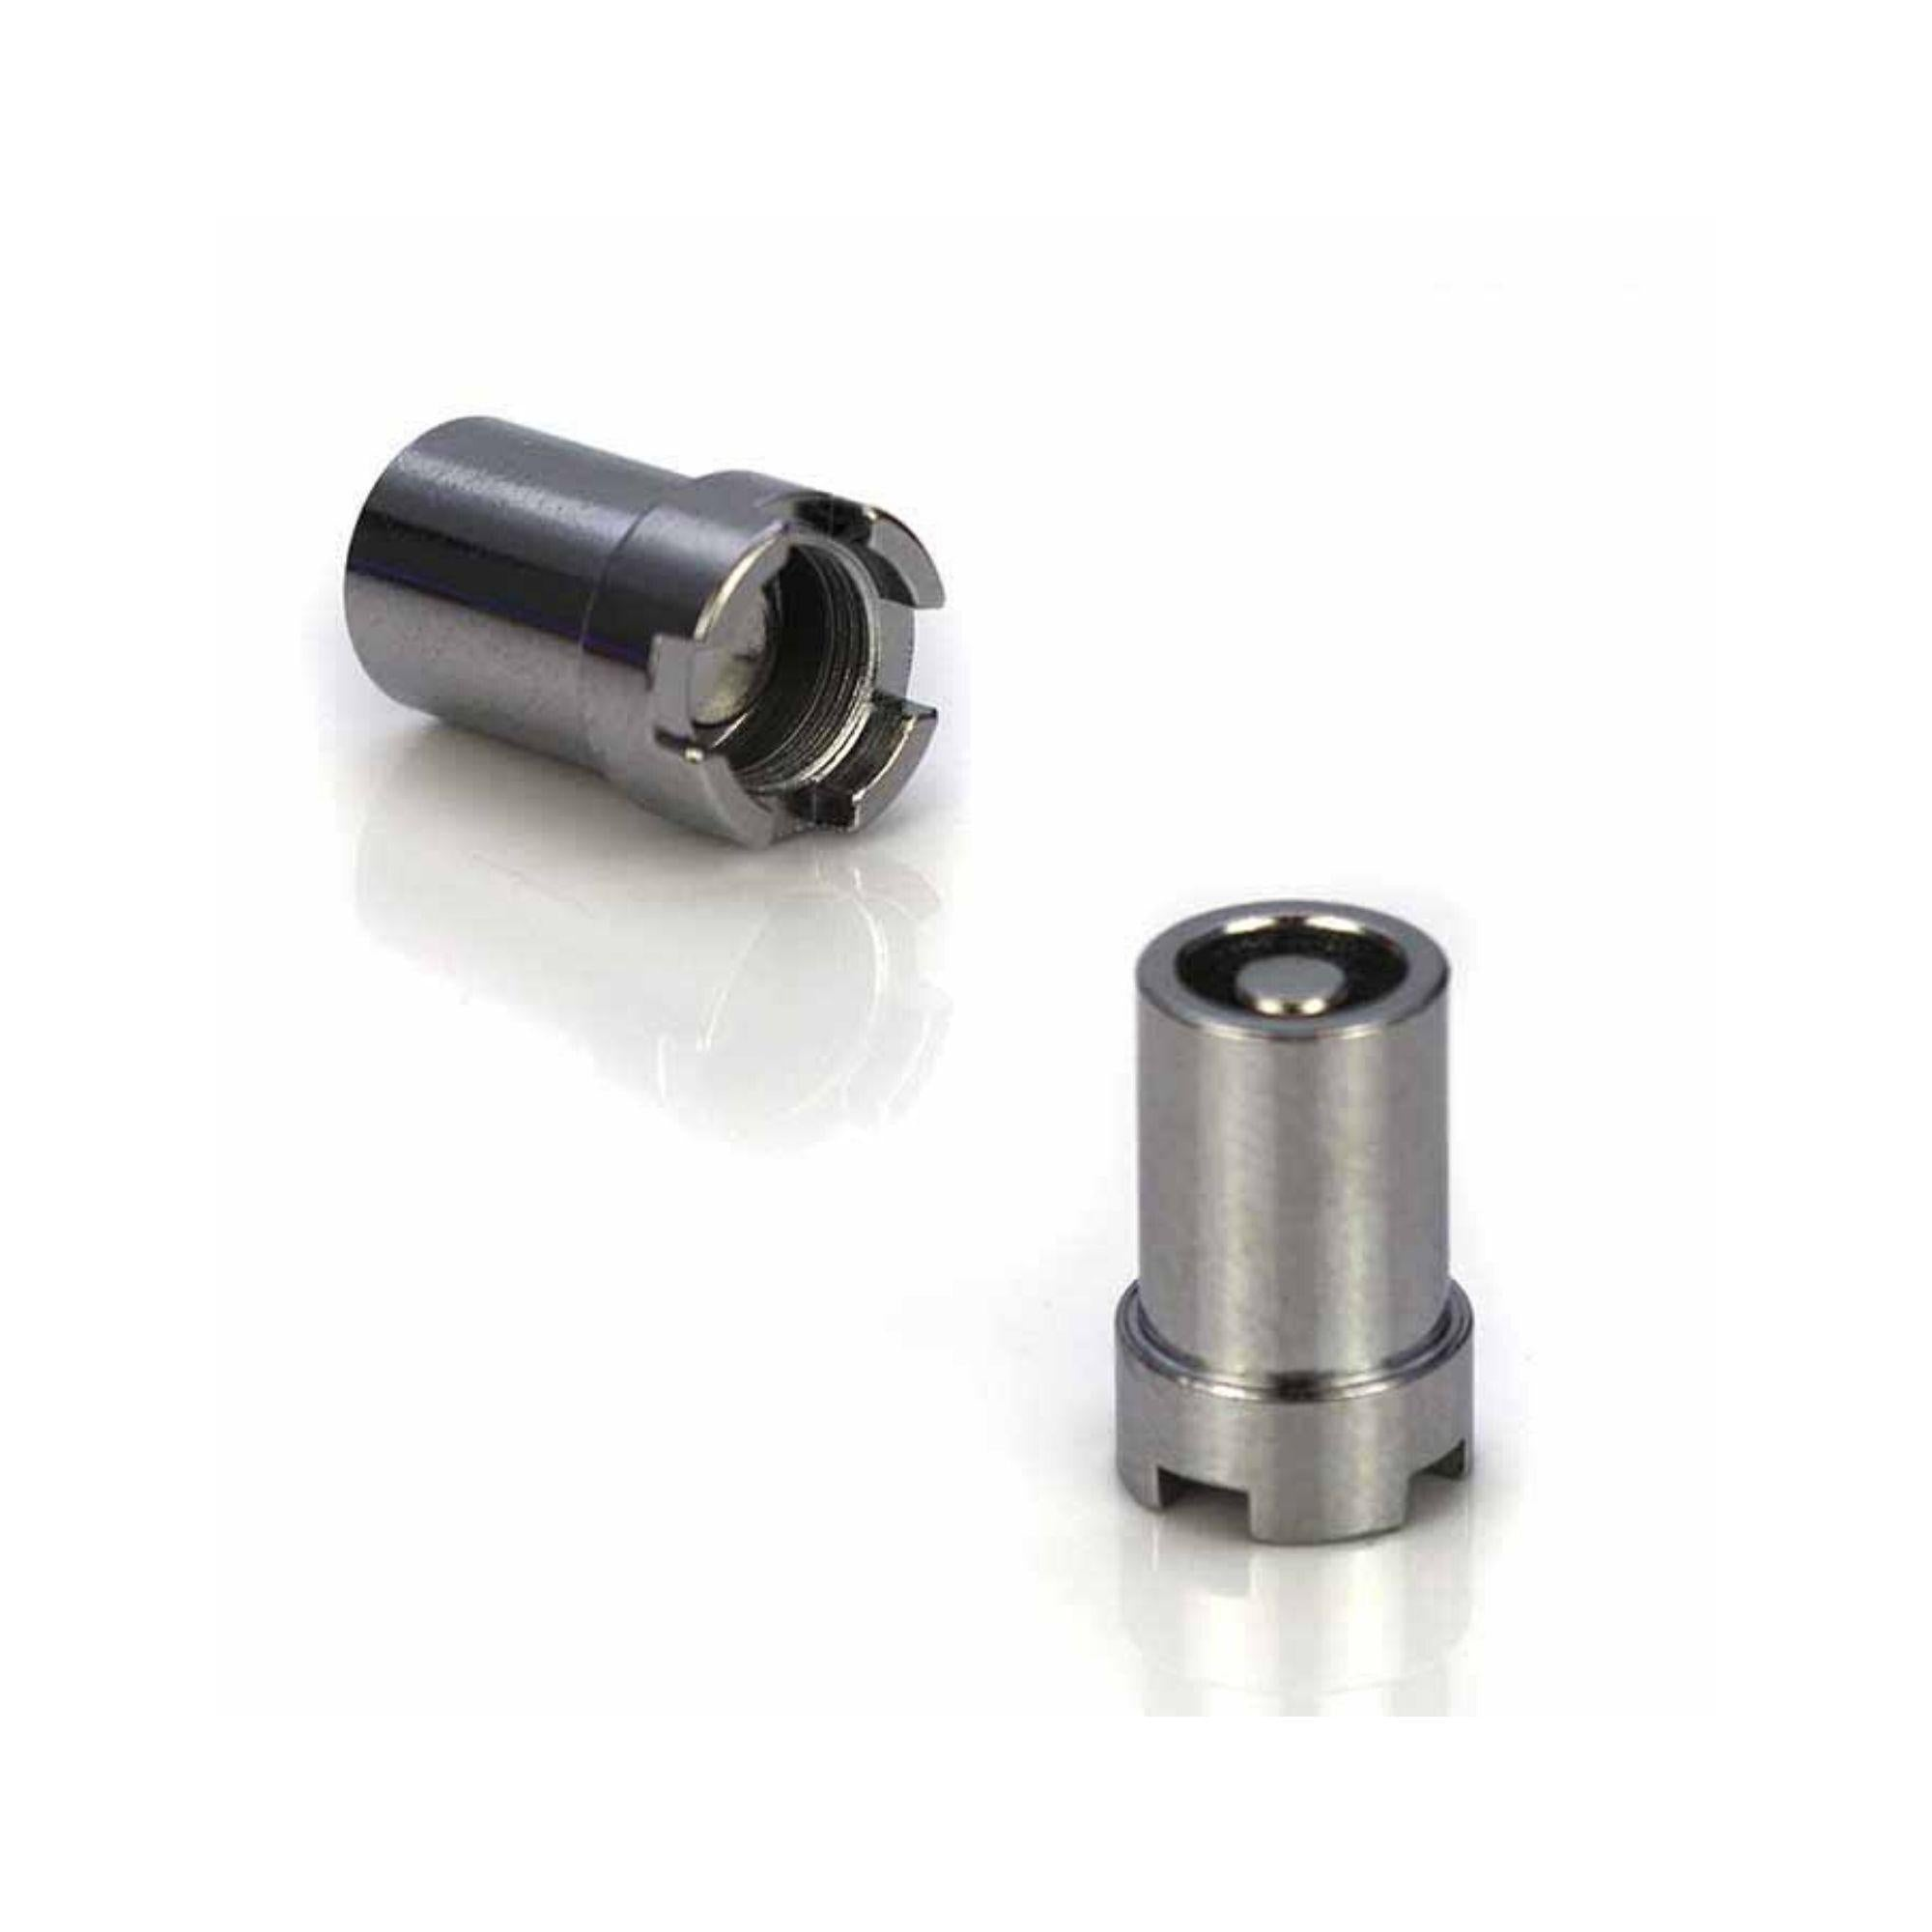 Yocan UNI 510 Magnetic Replacement Adapter